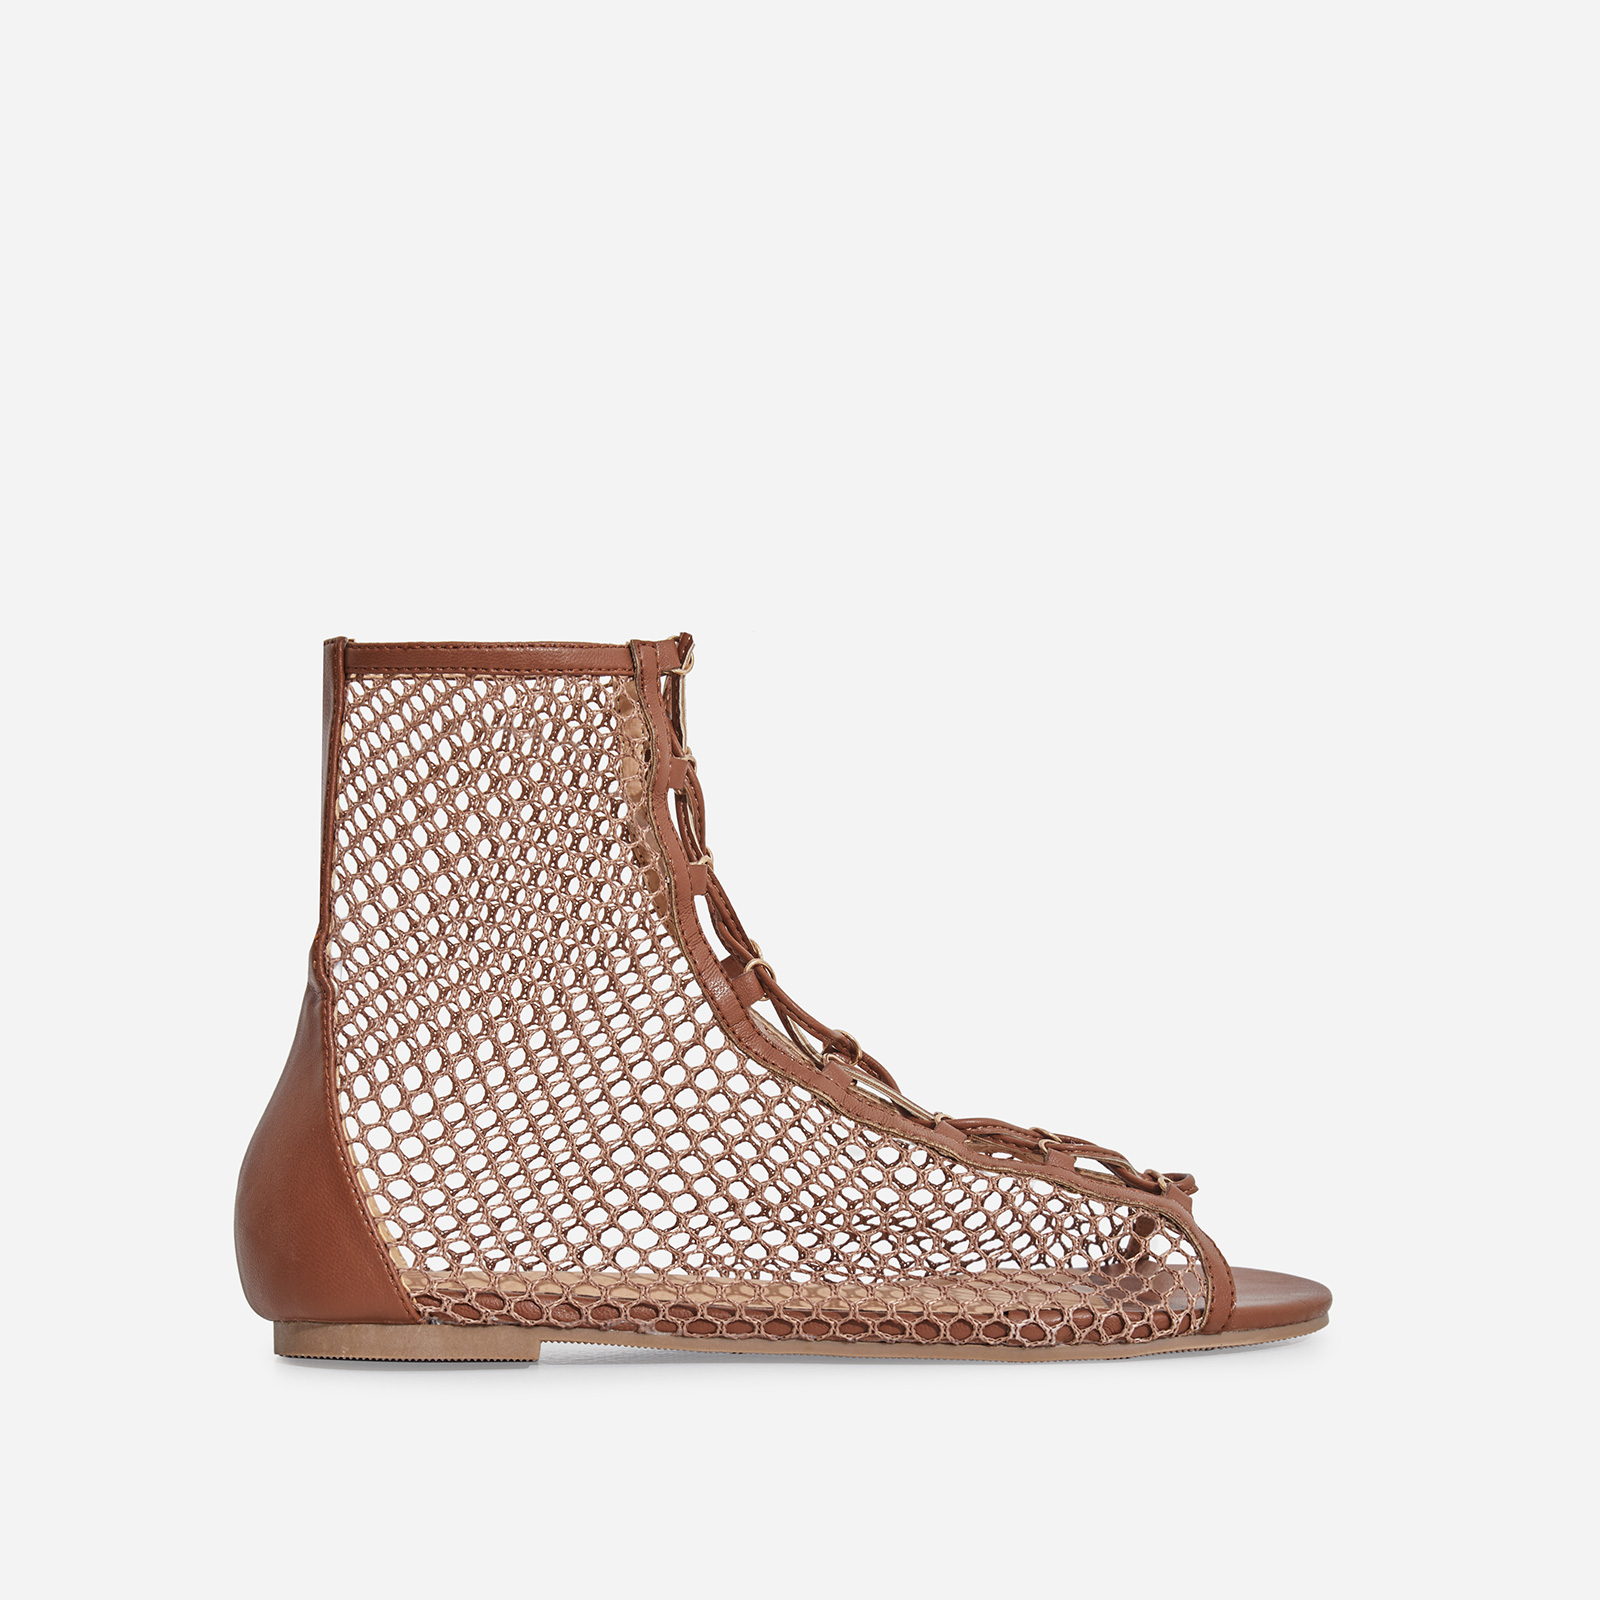 Boya Peep Toe Mesh Lace Up Gladiator Sandal In Tan Faux Leather